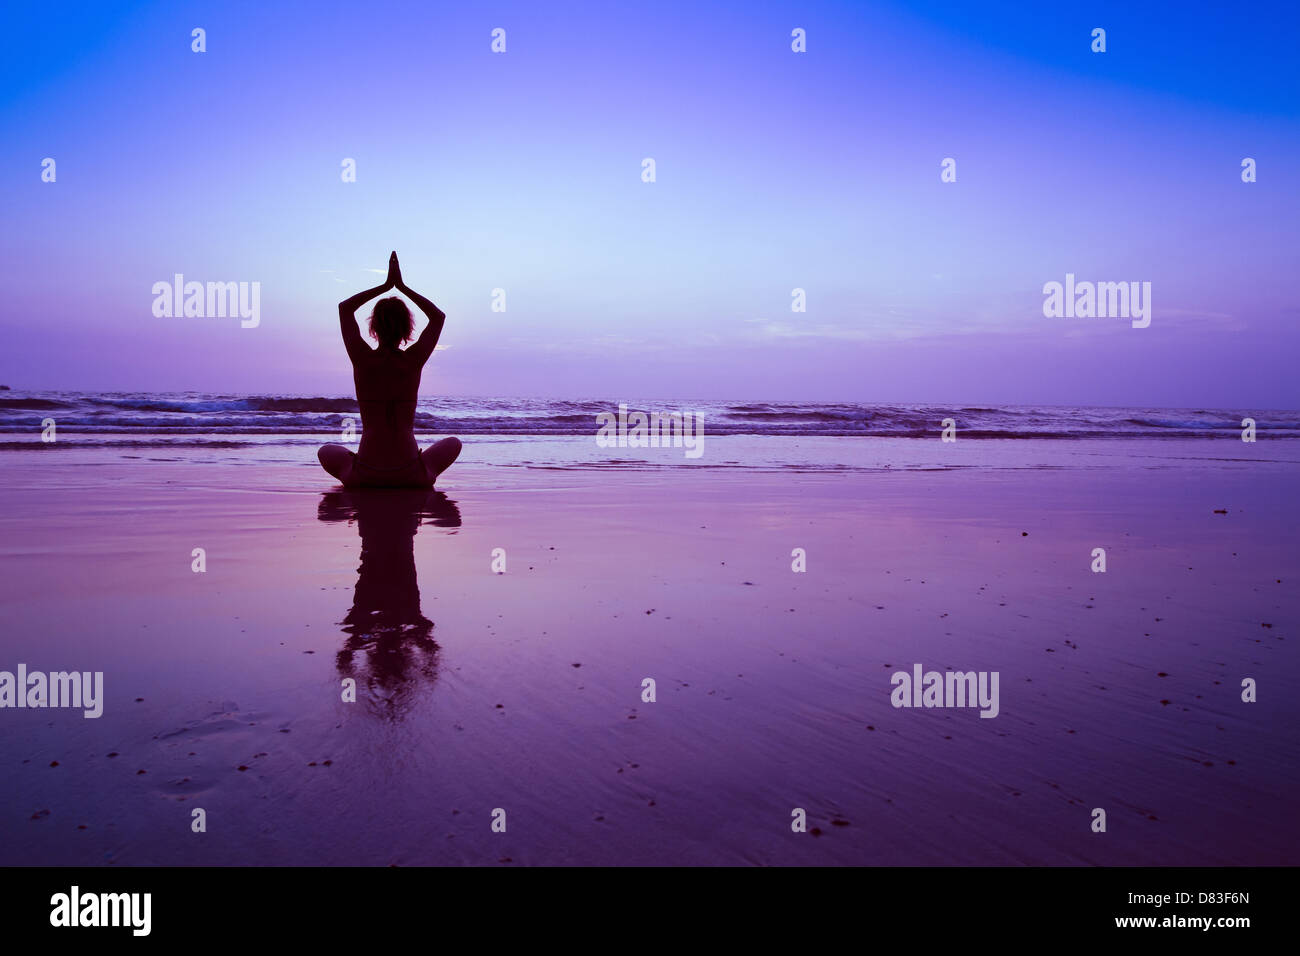 Yoga am Strand, meditation Stockbild